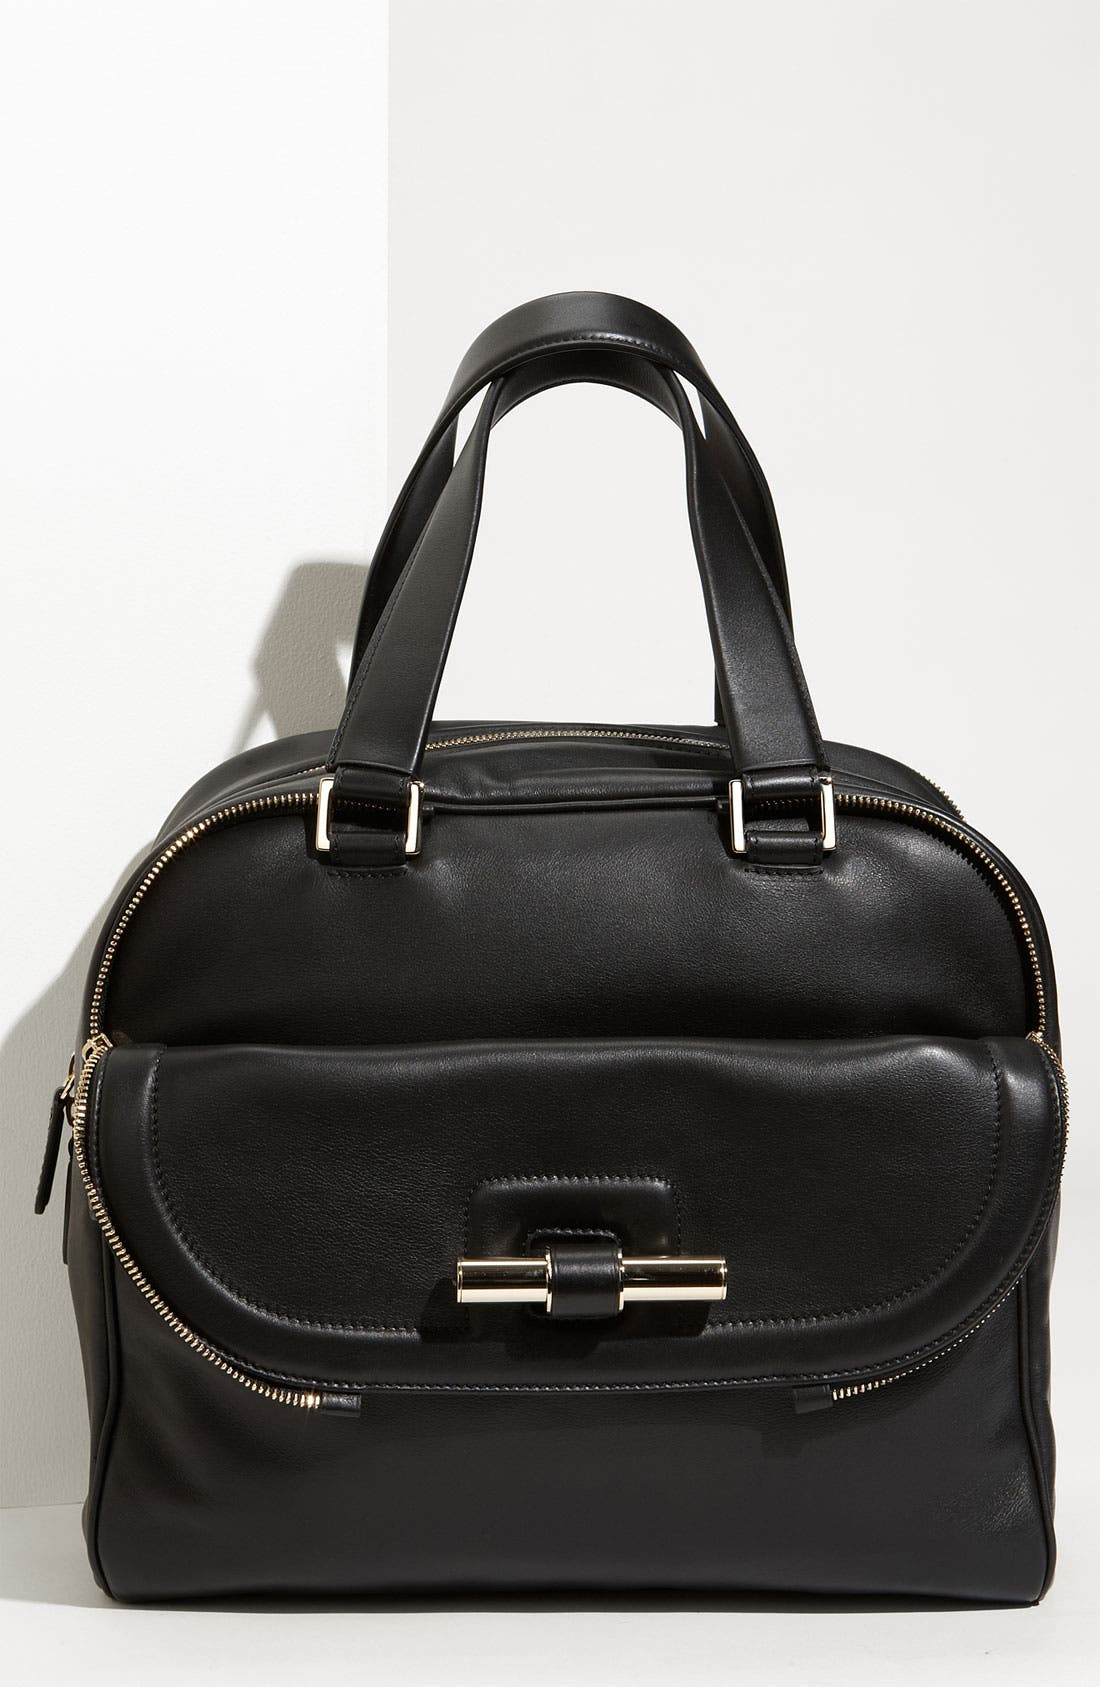 Main Image - Jimmy Choo 'Justine - Large' Leather Satchel